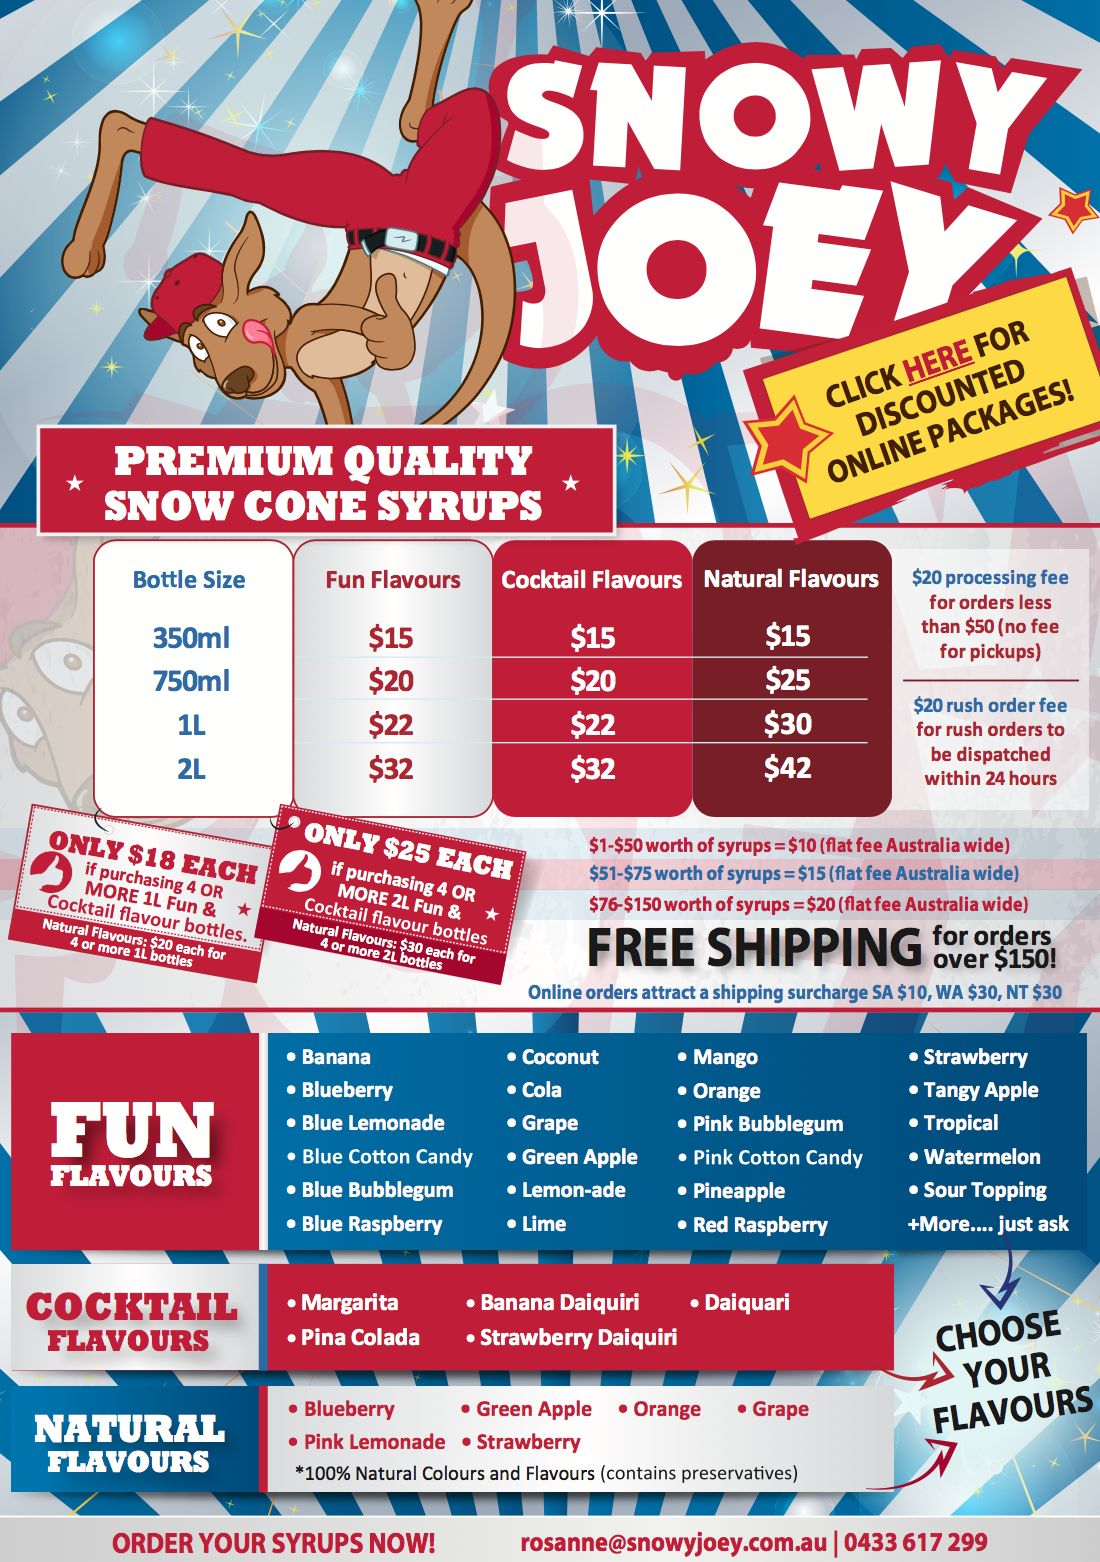 Screenshot showing a flyer for Snowy Joey